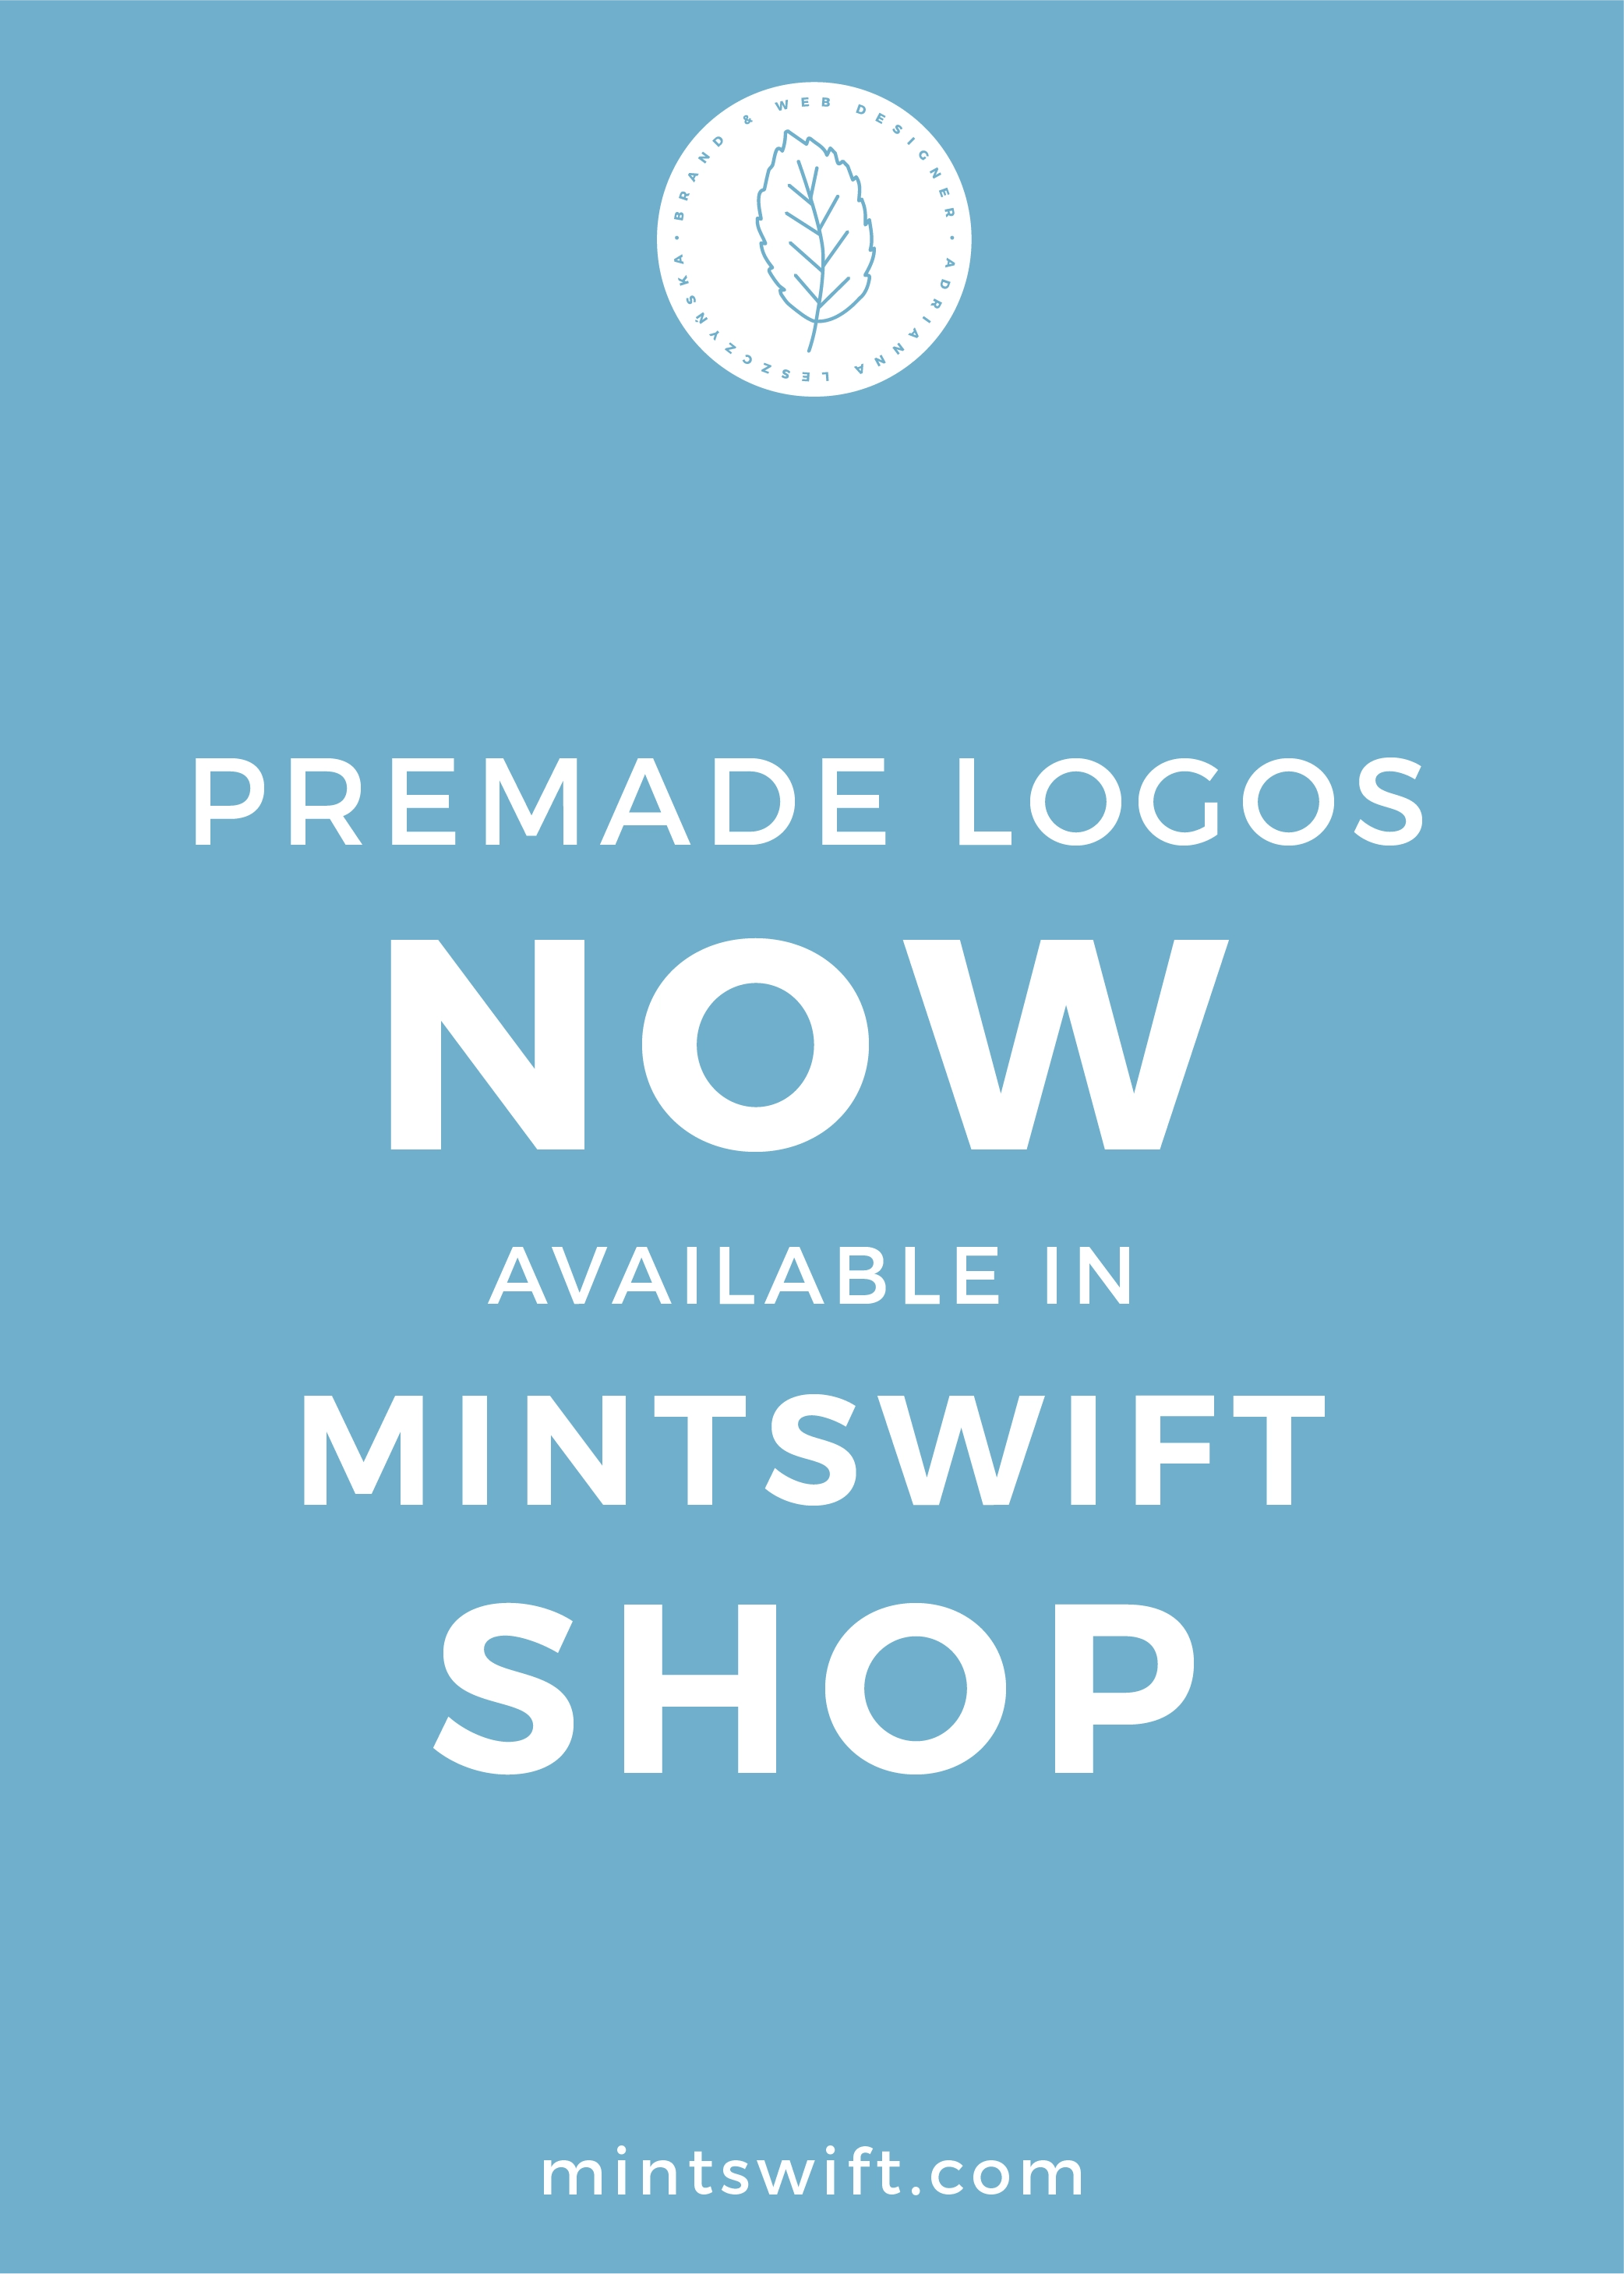 Premade Logos Now Available in MintSwift Shop - MintSwift